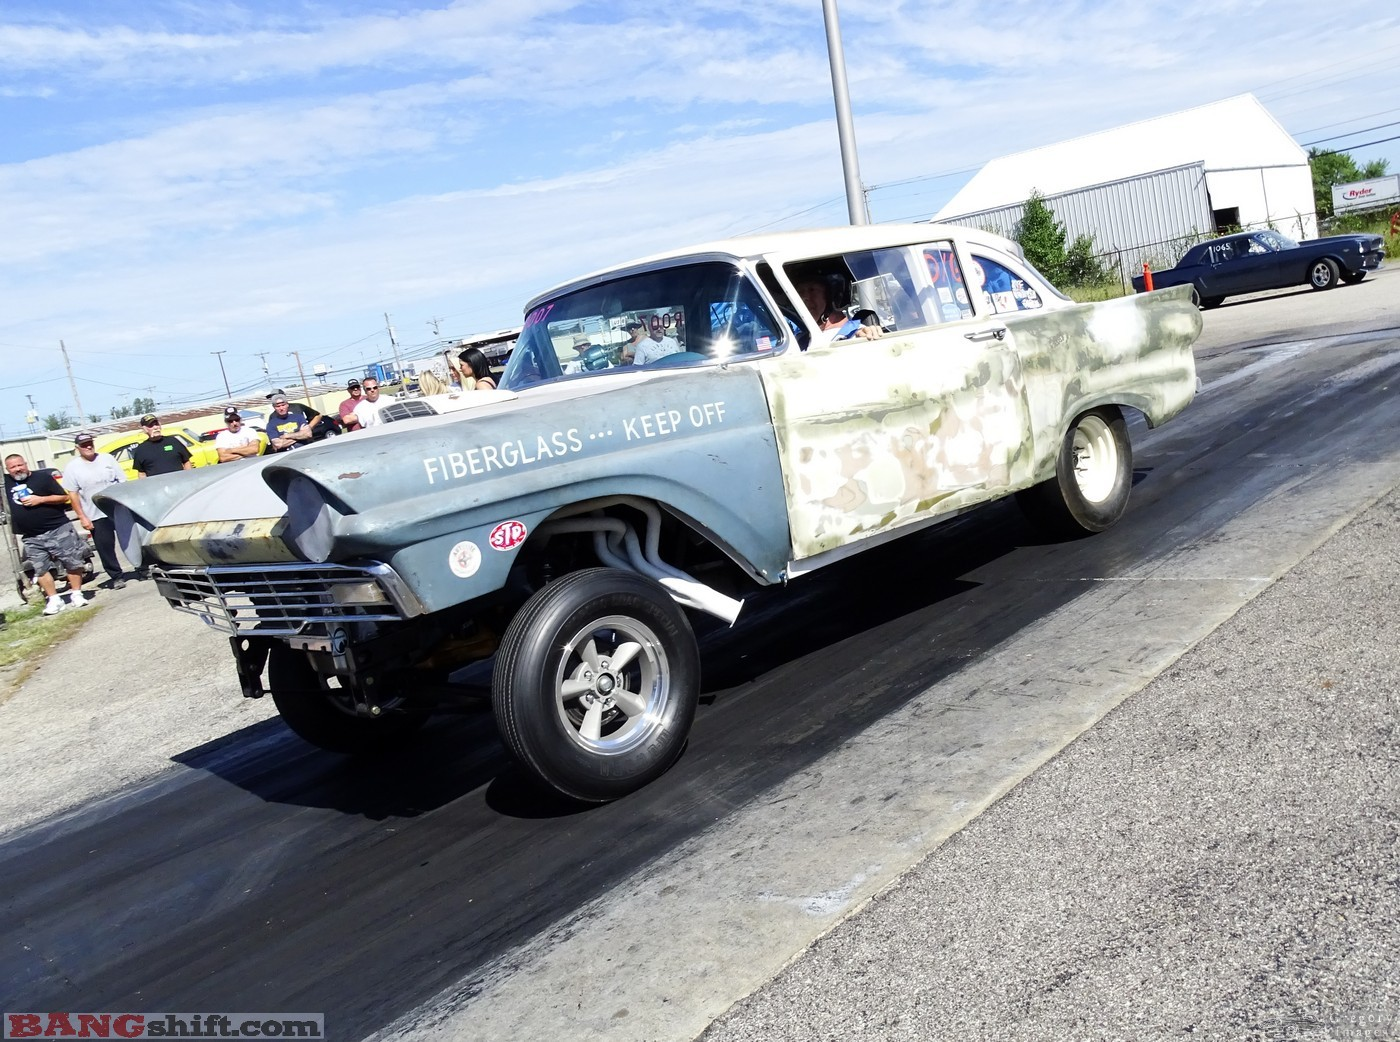 Drag Race Action Photo Coverage: The US60 Nostalgia Nationals – Wheels Up and Tire Smoking Fun!